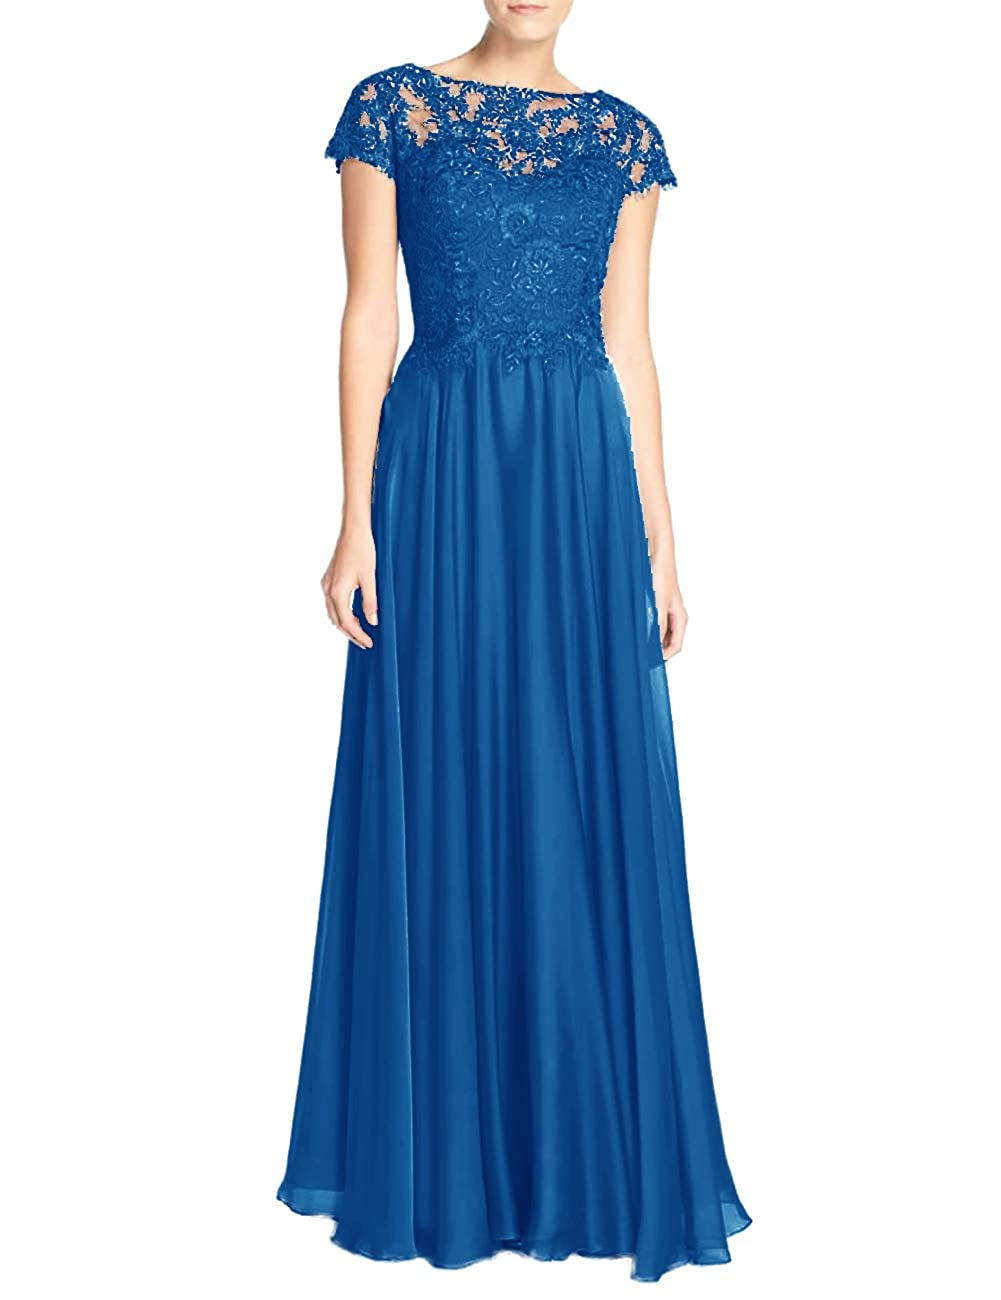 bluee Mother of The Bride Dresses with Short Sleeves Plus Size Mother Gowns and Evening Dresses Formal Dress